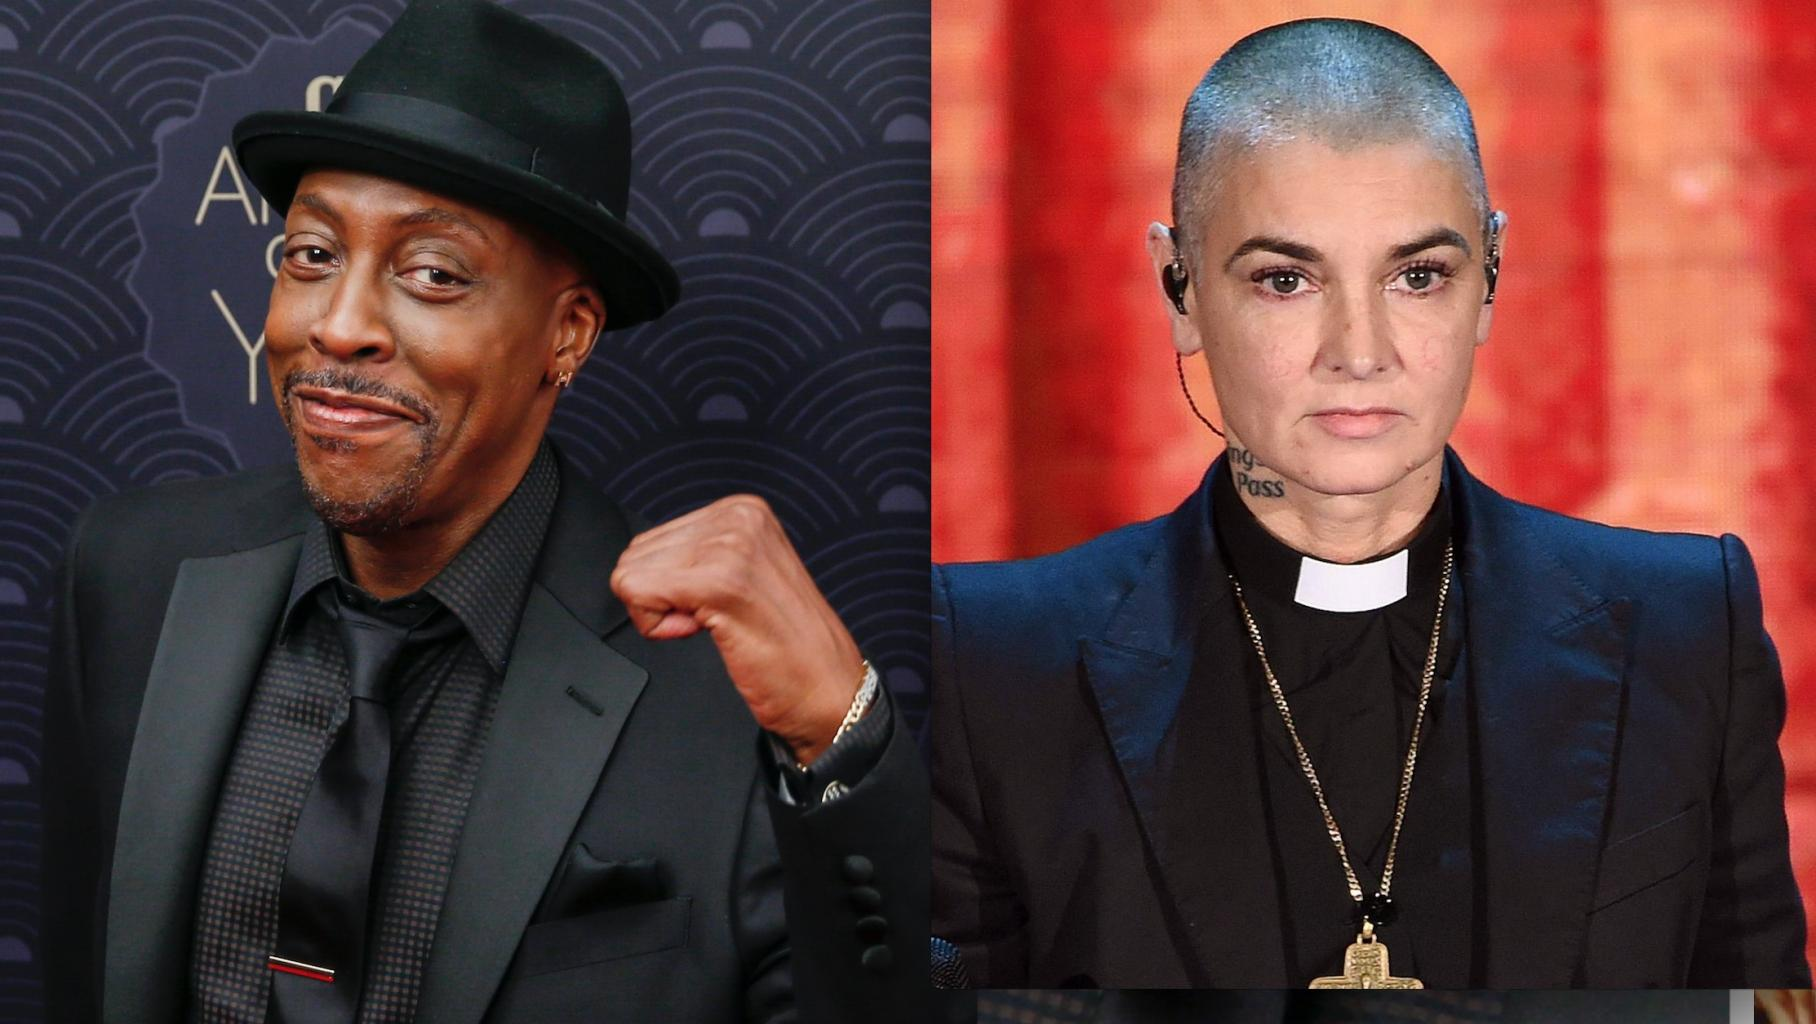 Sinead O'Connor Apologizes For Claiming Arsenio Hall Gave Drugs To Prince